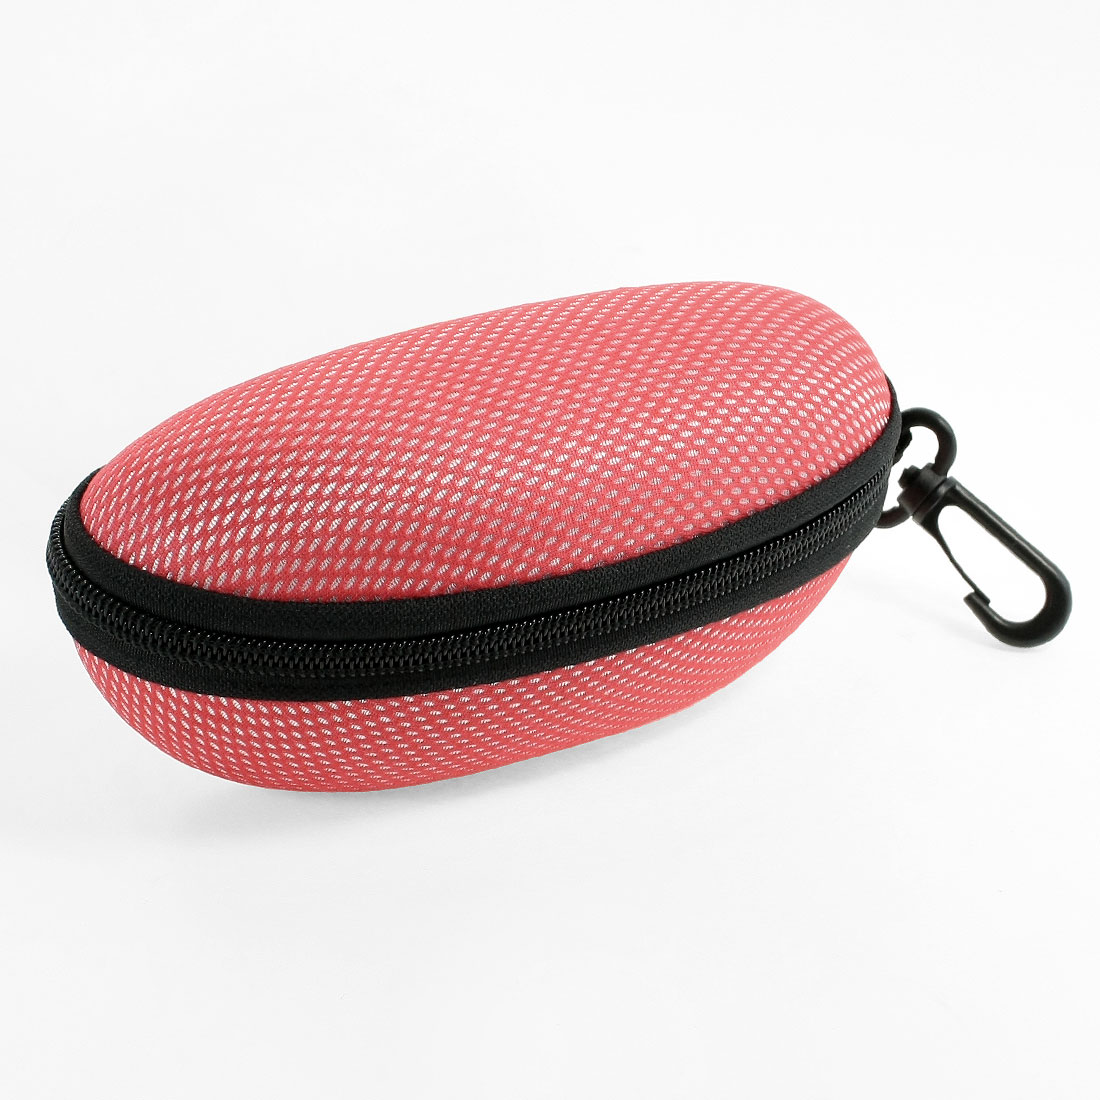 Spring Hook Design Zipper Closure Eyeglasses Case Box Holder Black Red